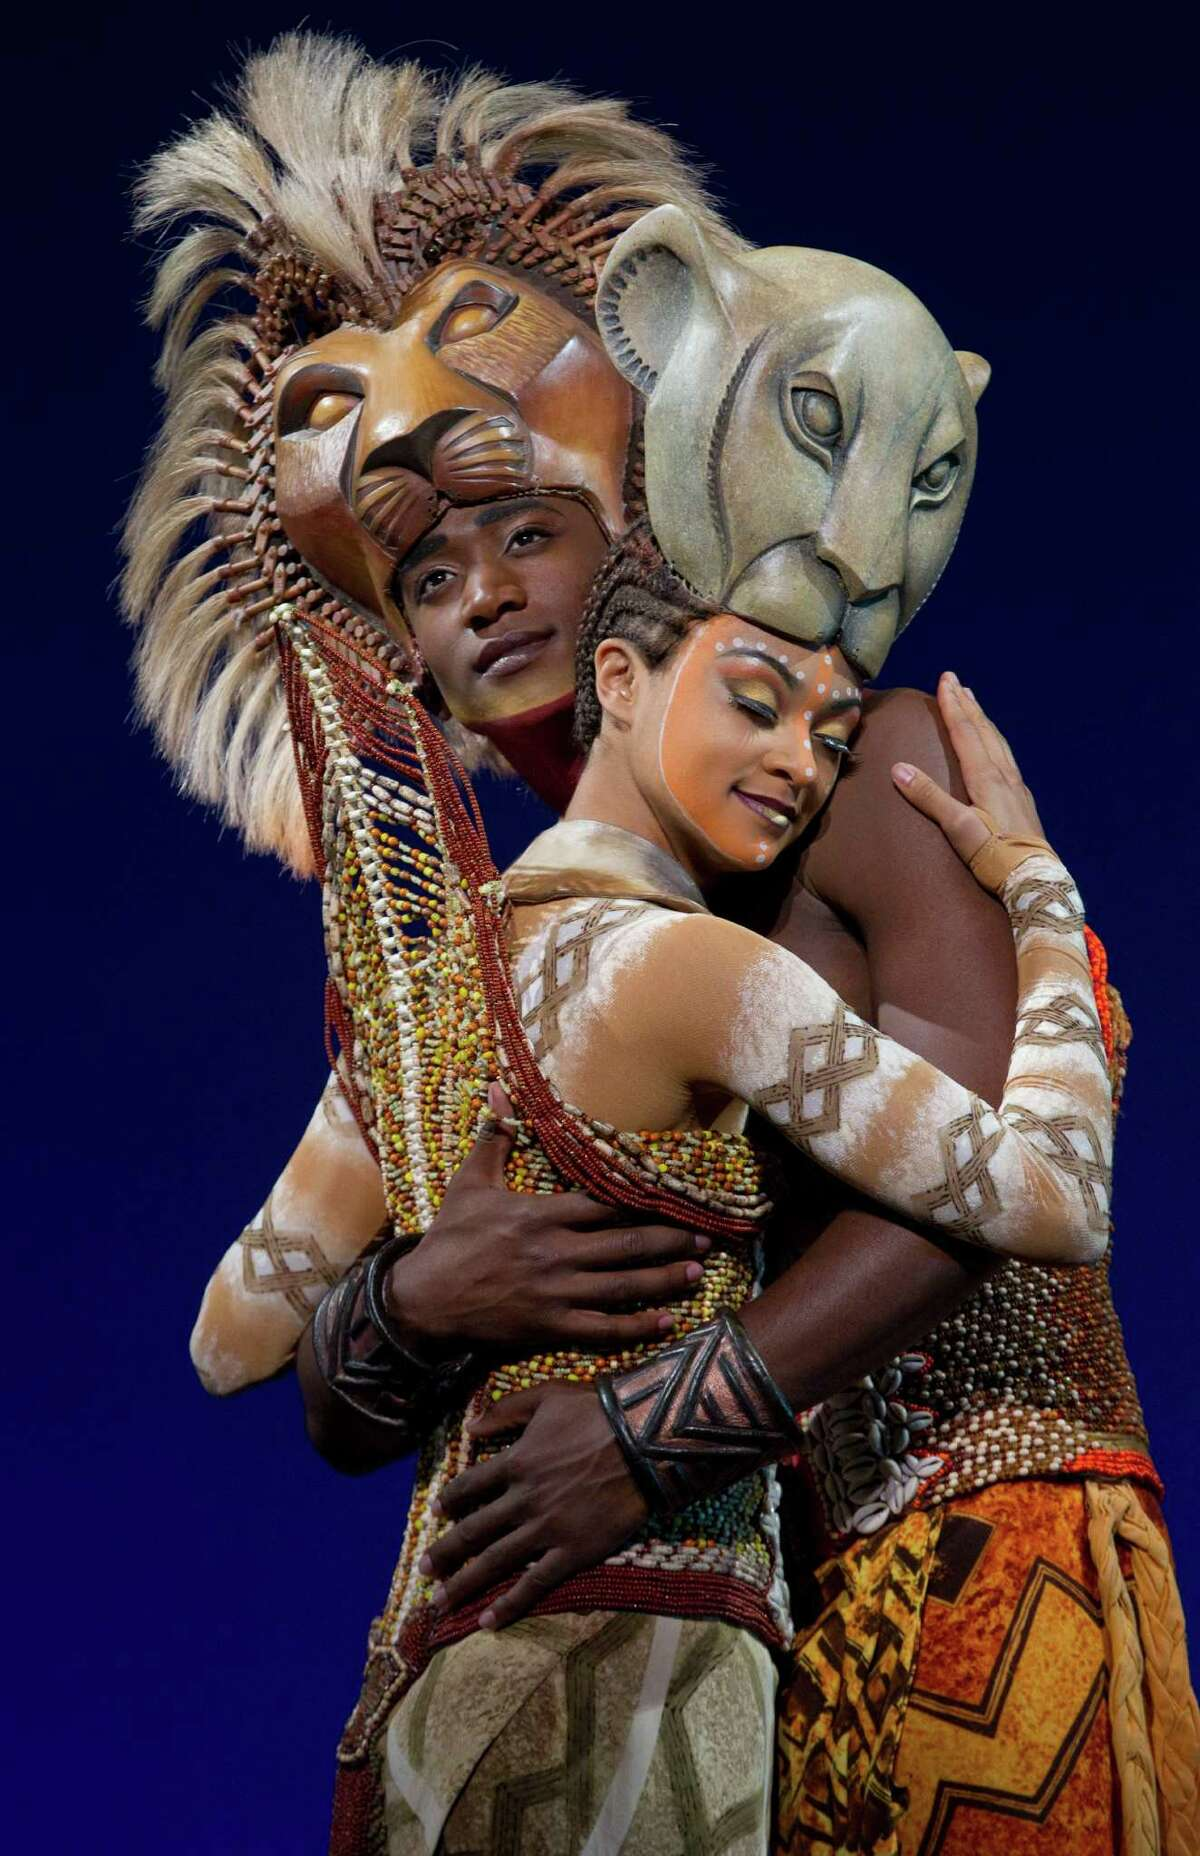 """Syndee Winters as """"Nala"""" and Jelani Remy as """"Simba"""" from THE LION KING National Tour. Disney. Photo Credit: Joan Marcus."""